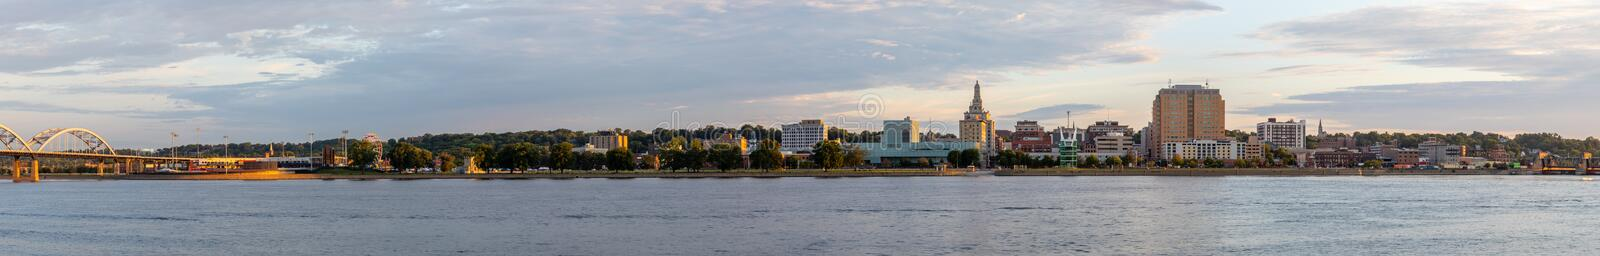 The City Of Davenport. Davenport, in the state of Iowa, United States Of America, as seen across the Mississippi River stock photo